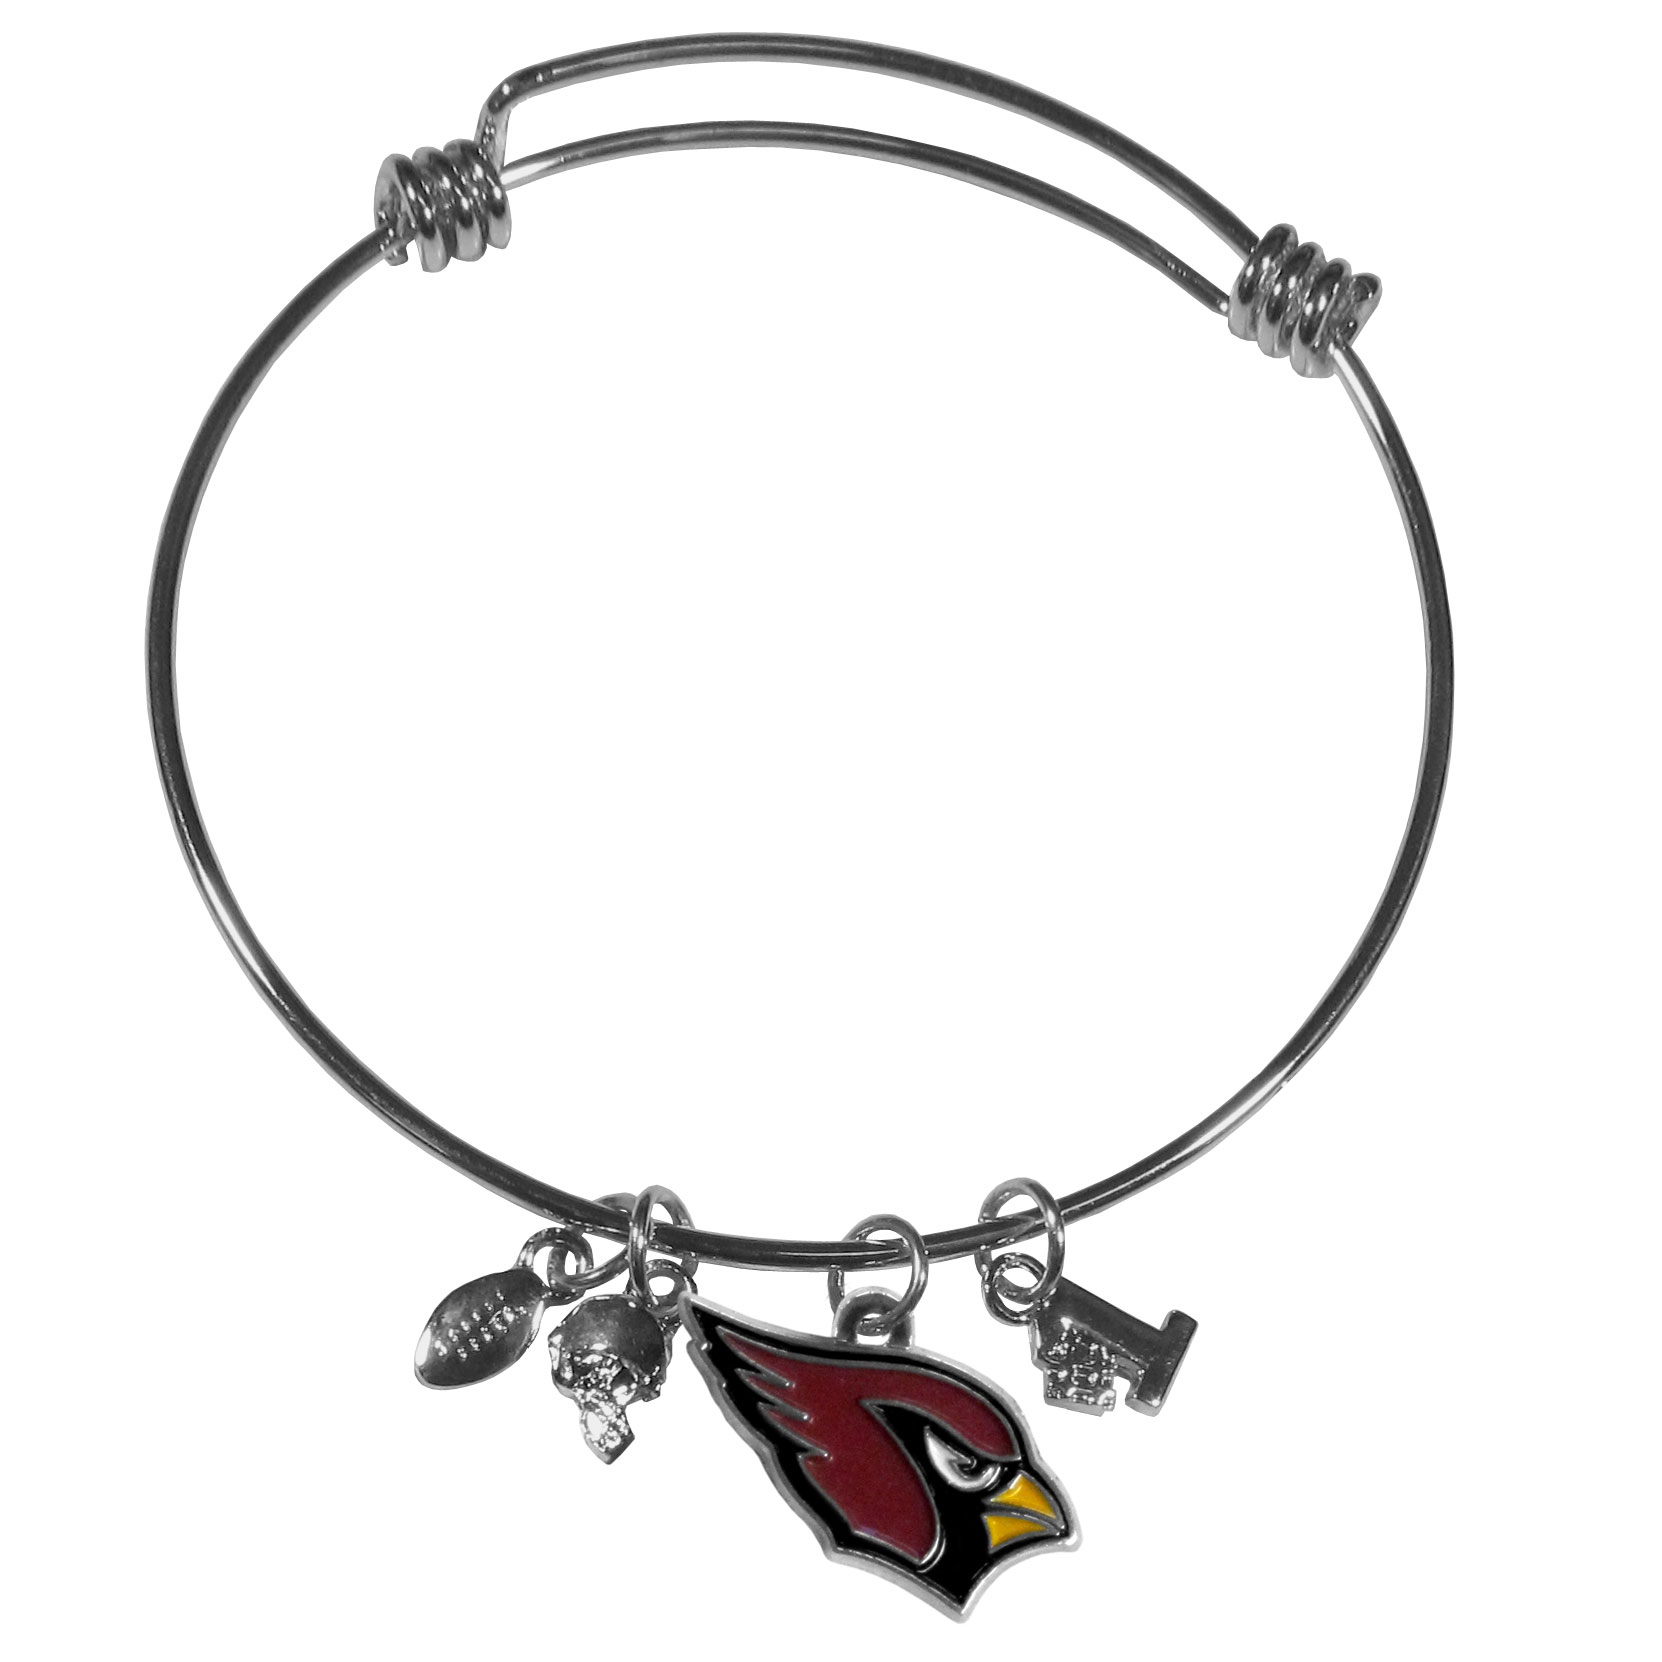 Arizona Cardinals Charm Bangle Bracelet - Adjustable wire bracelets are all the rage and this Arizona Cardinals bracelet matches the popular trend with your beloved team. The bracelet features 4 charms in total, each feature exceptional detail and the team charm has enameled team colors.